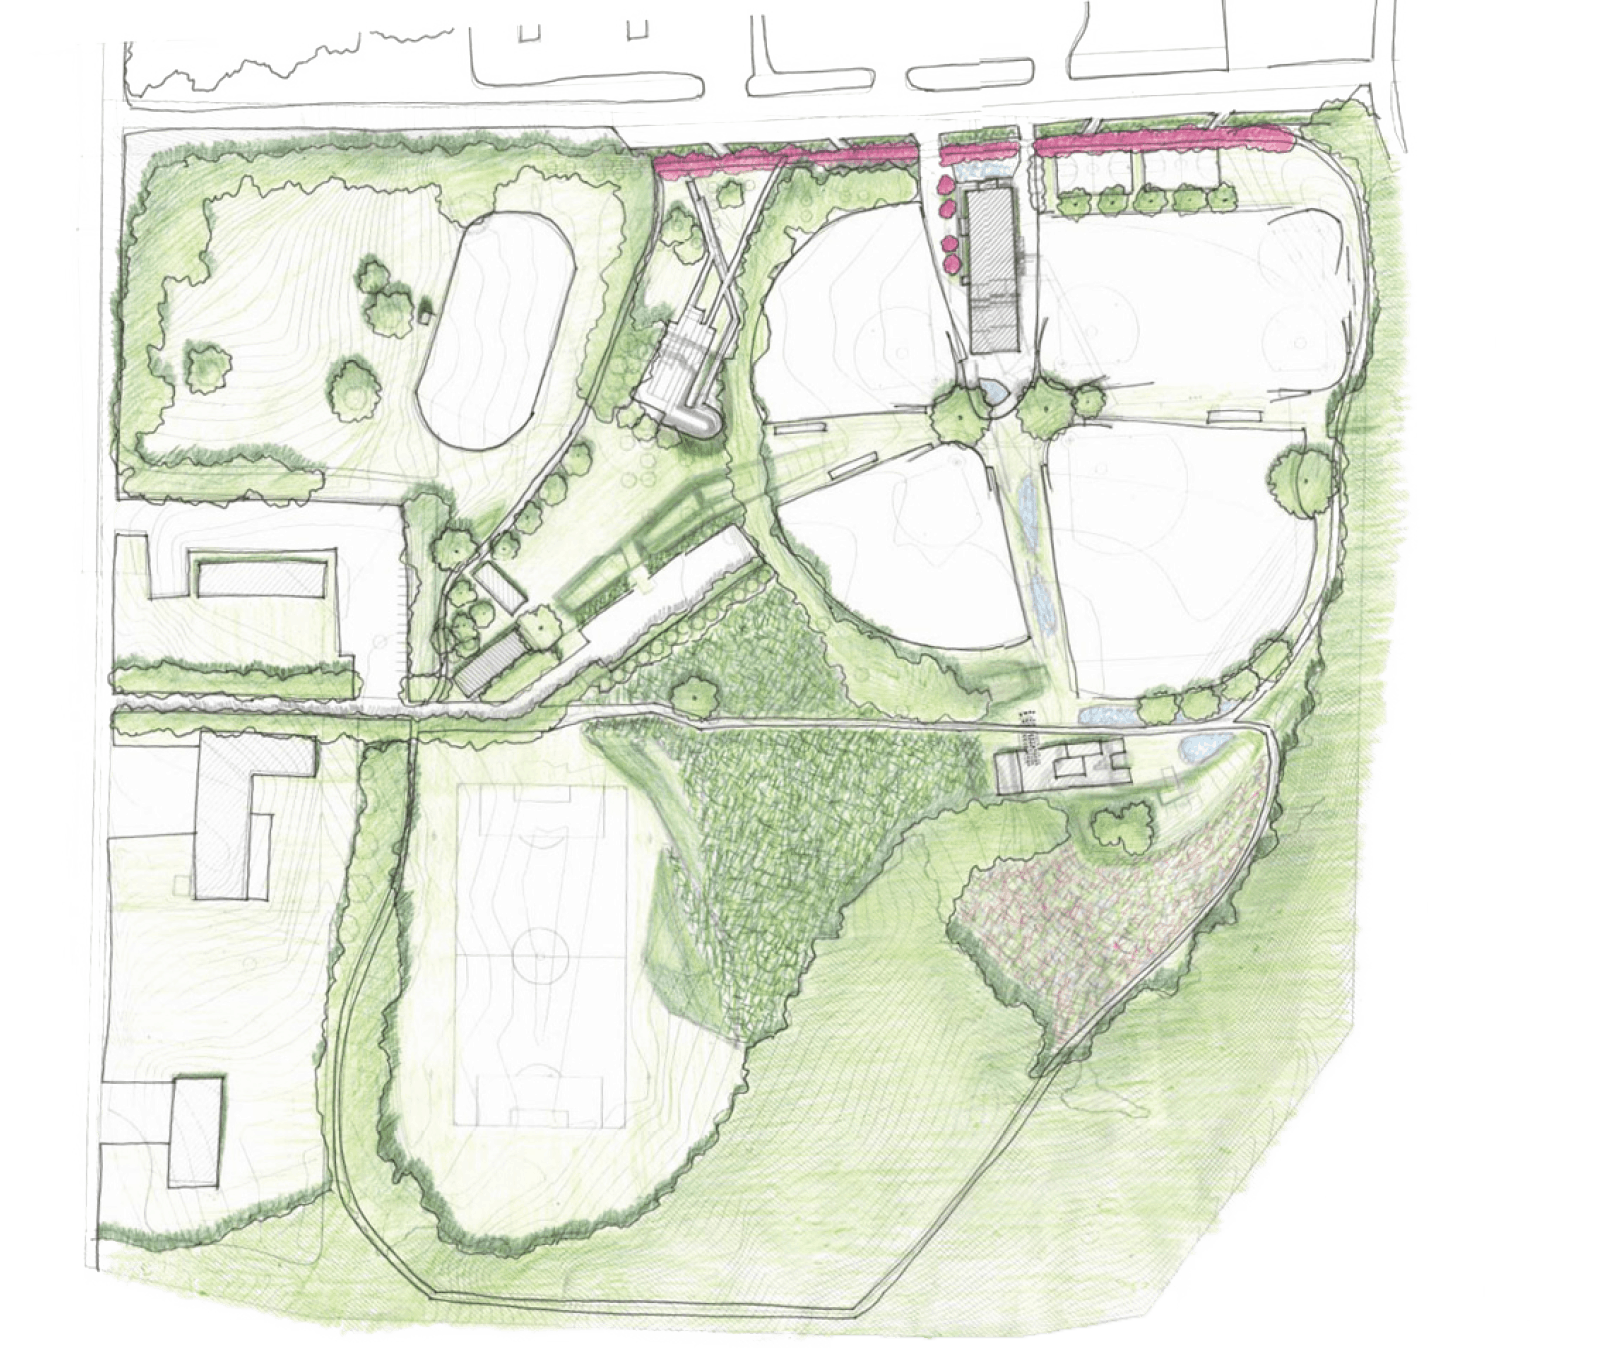 map of lions park showing where new plants will be placed